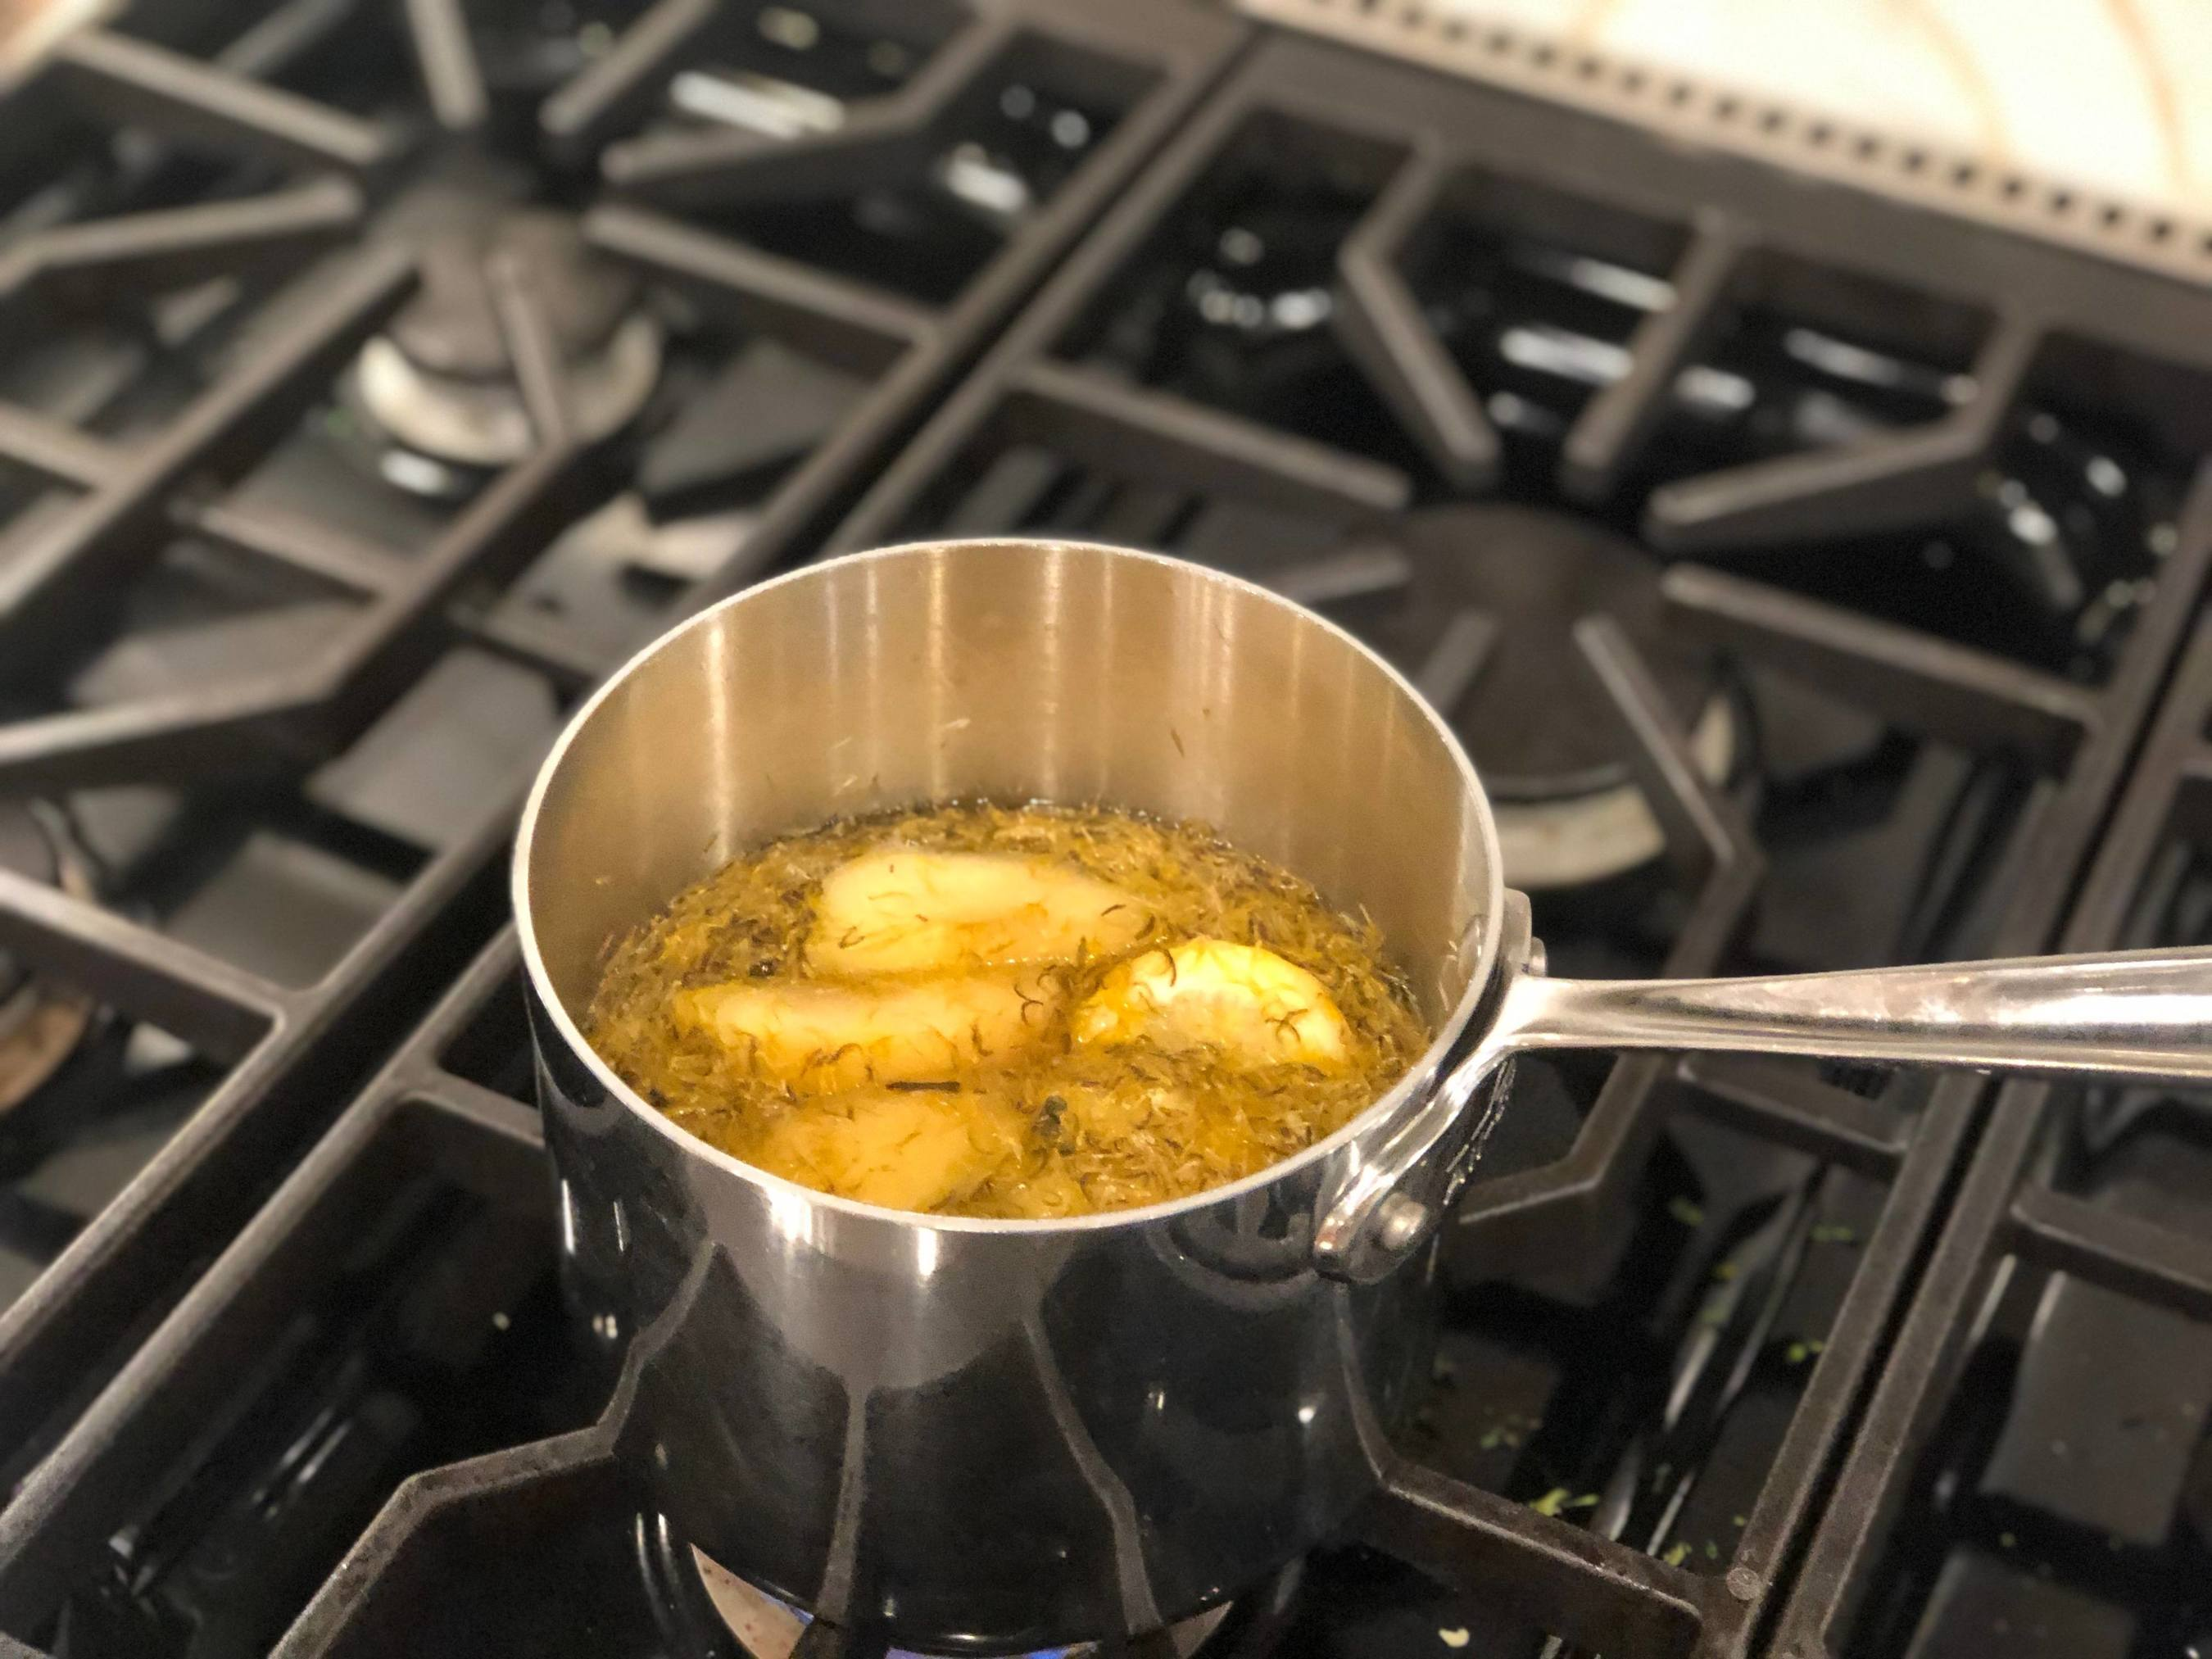 dandelions cooking on the stove in a metal pot